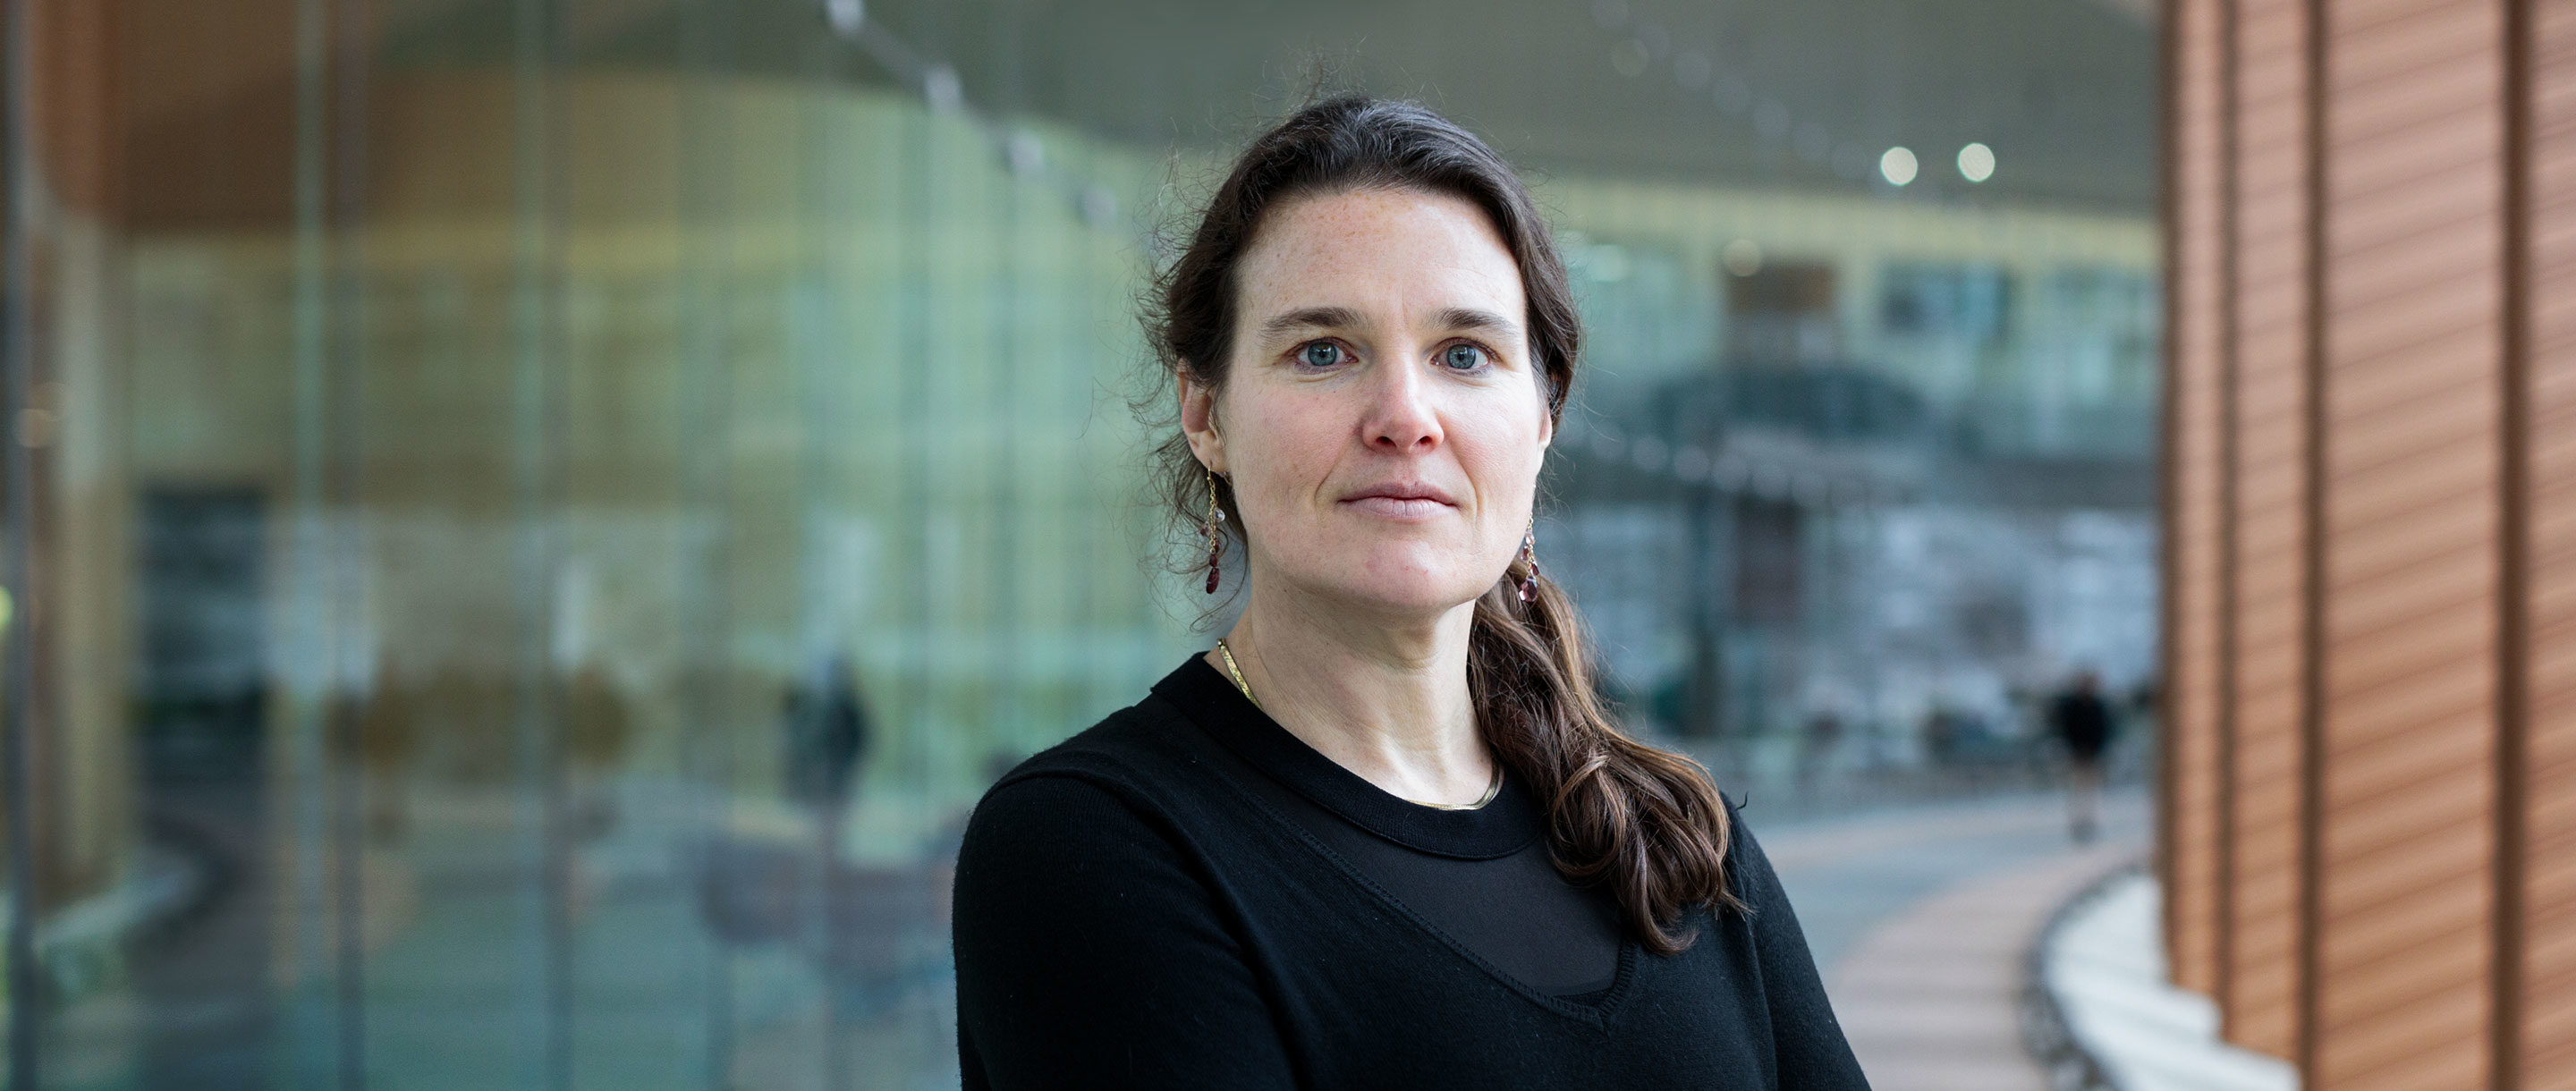 Barbara Engelhardt, a Princeton University computer scientist, wants to strengthen the foundation of biological knowledge in machine-learning approaches to genomic analysis.